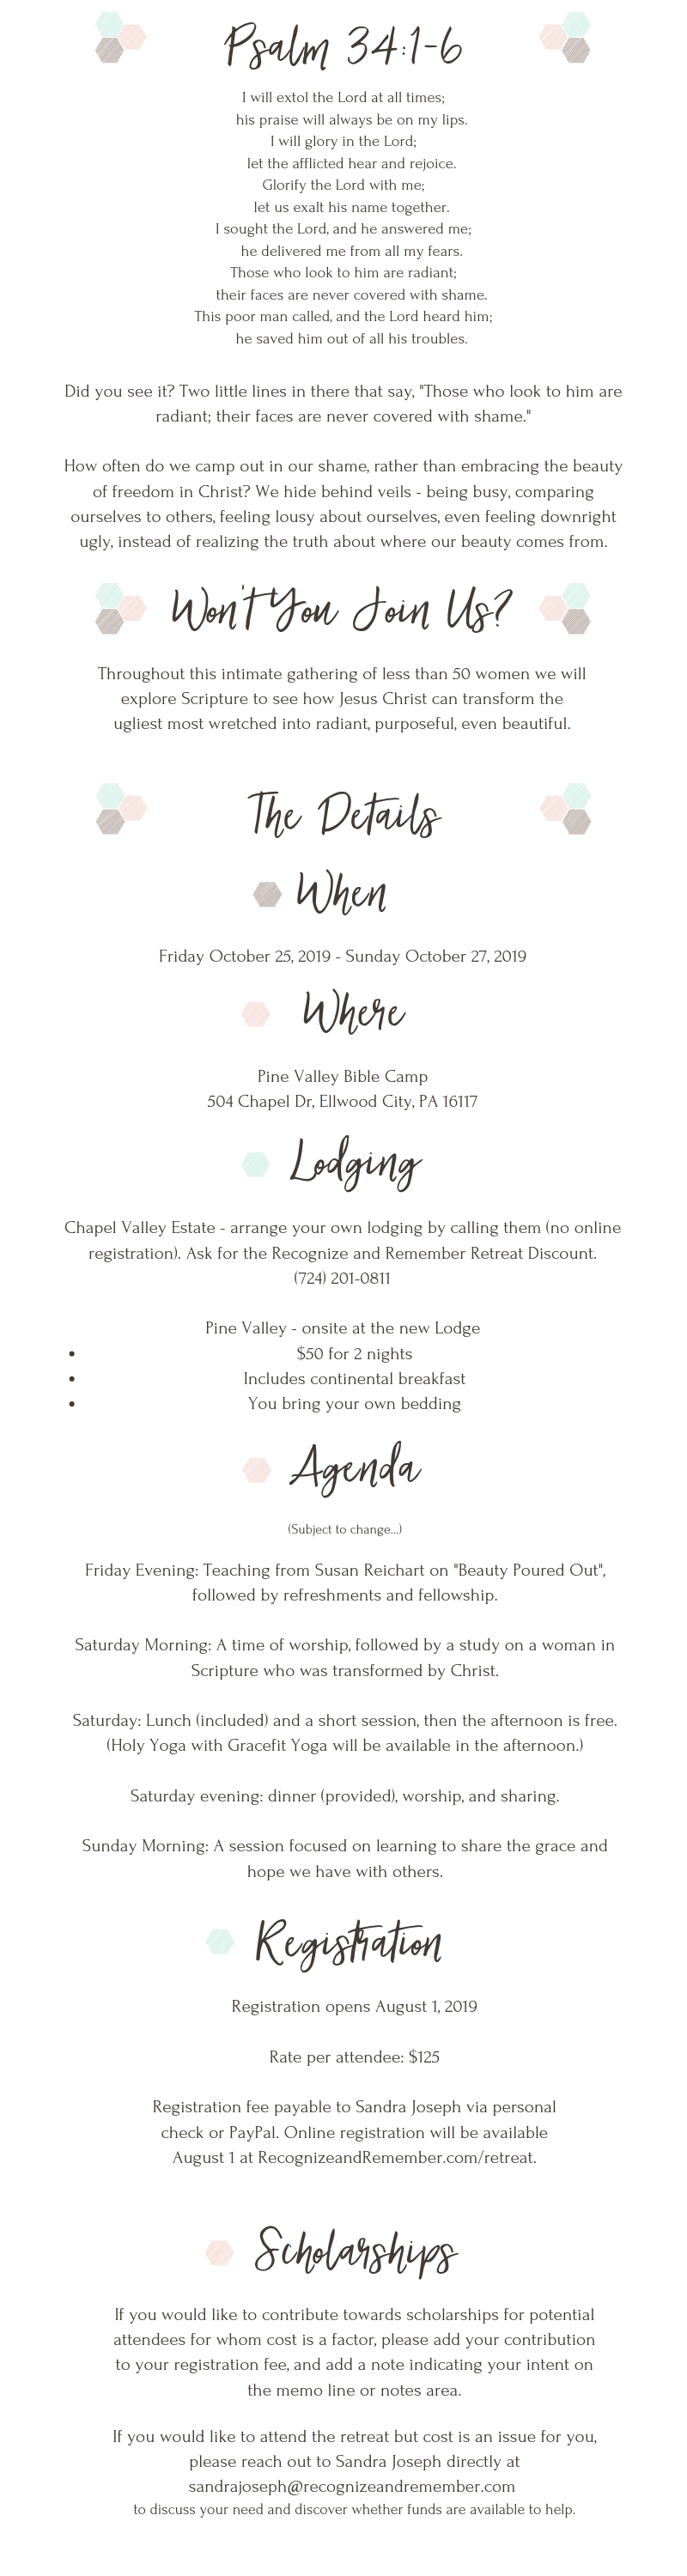 Details for the Beauty Revealed Retreat